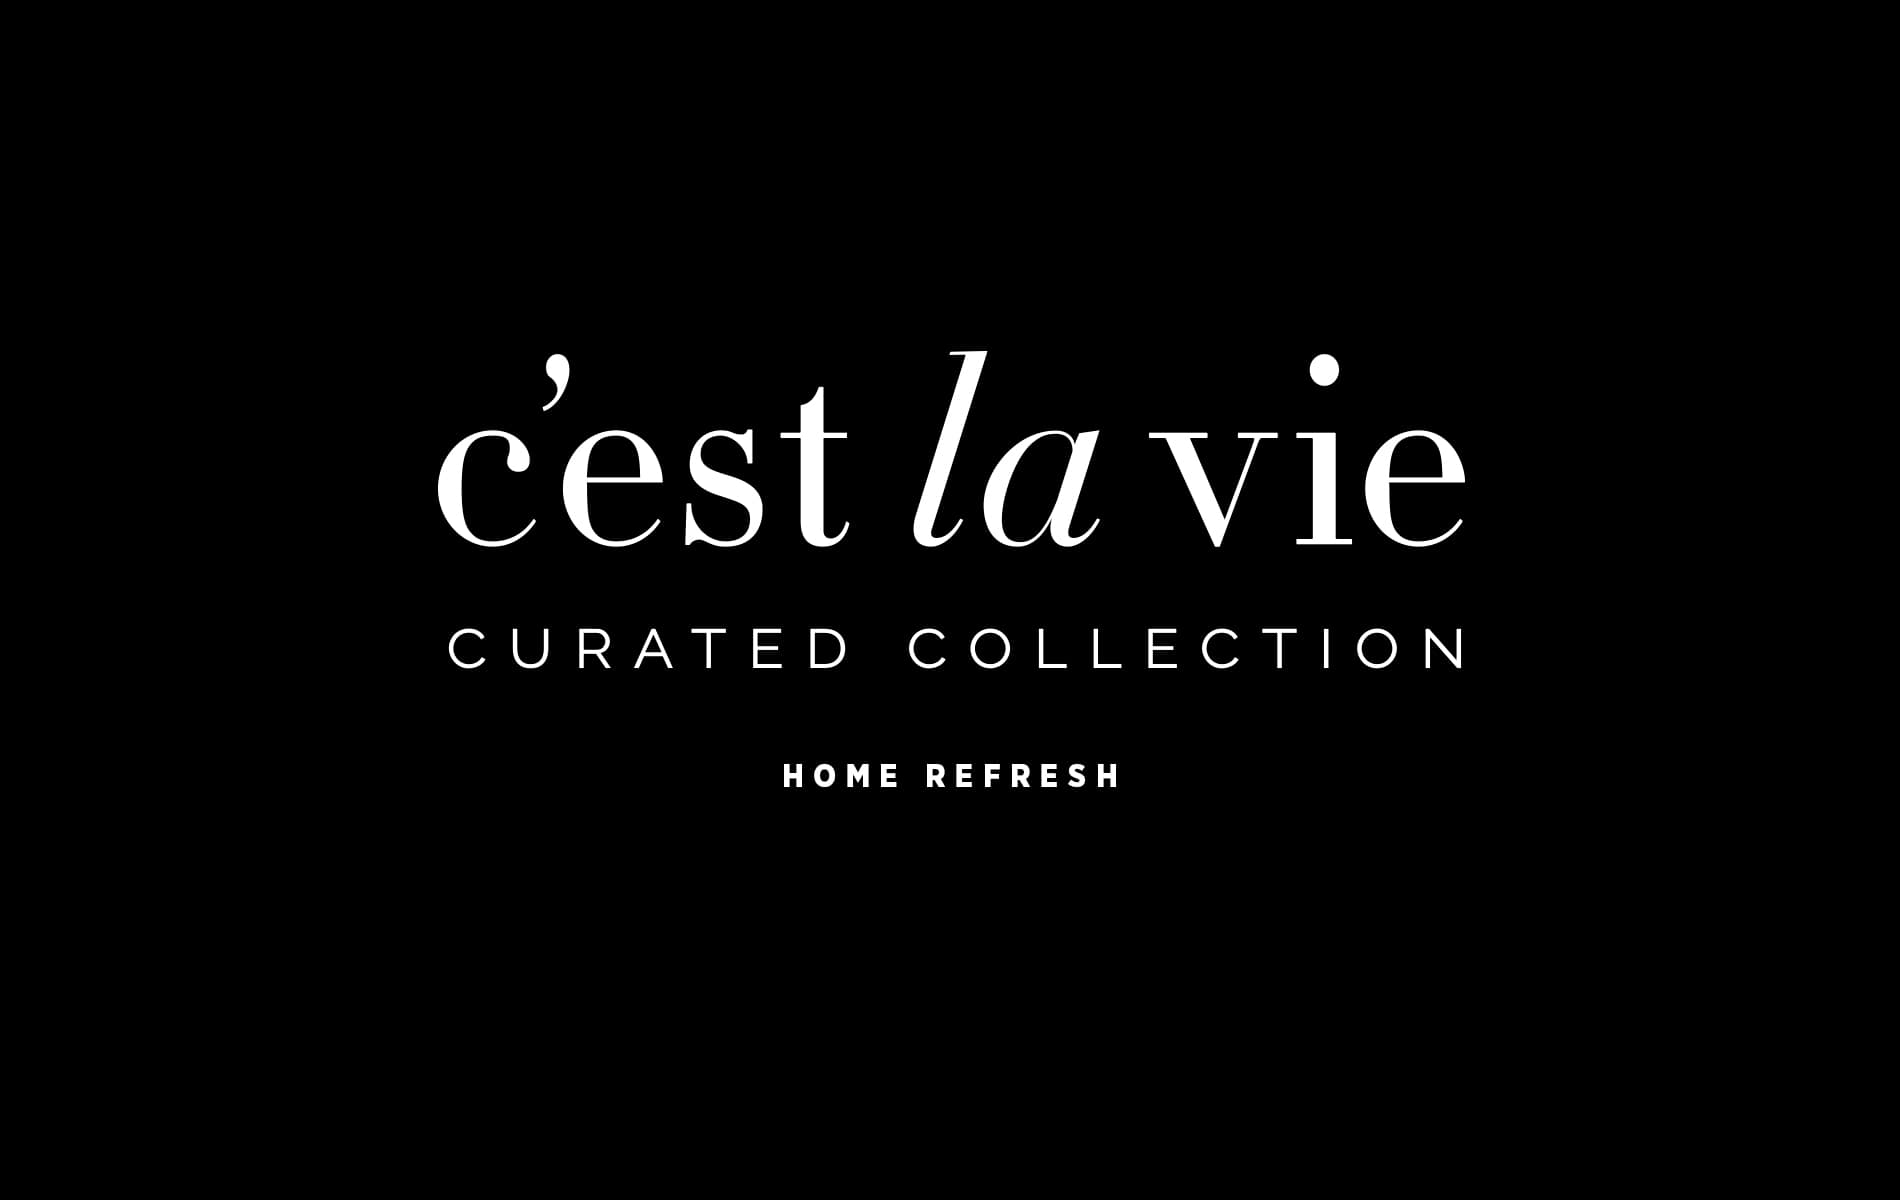 VIE Magazine, C'est la VIE Curated Collection